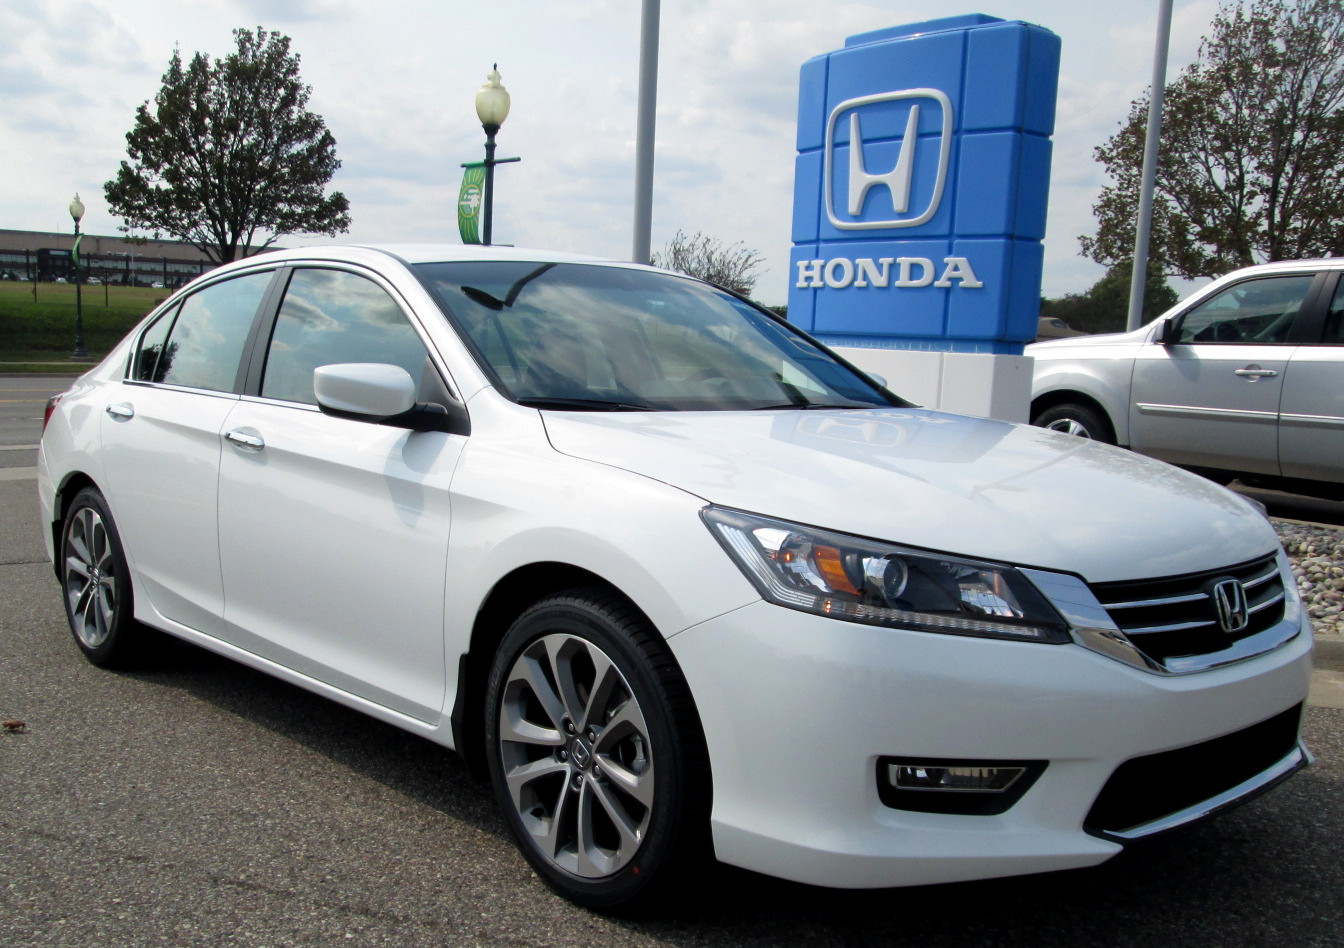 2013 honda accord white 200 interior and exterior images. Black Bedroom Furniture Sets. Home Design Ideas